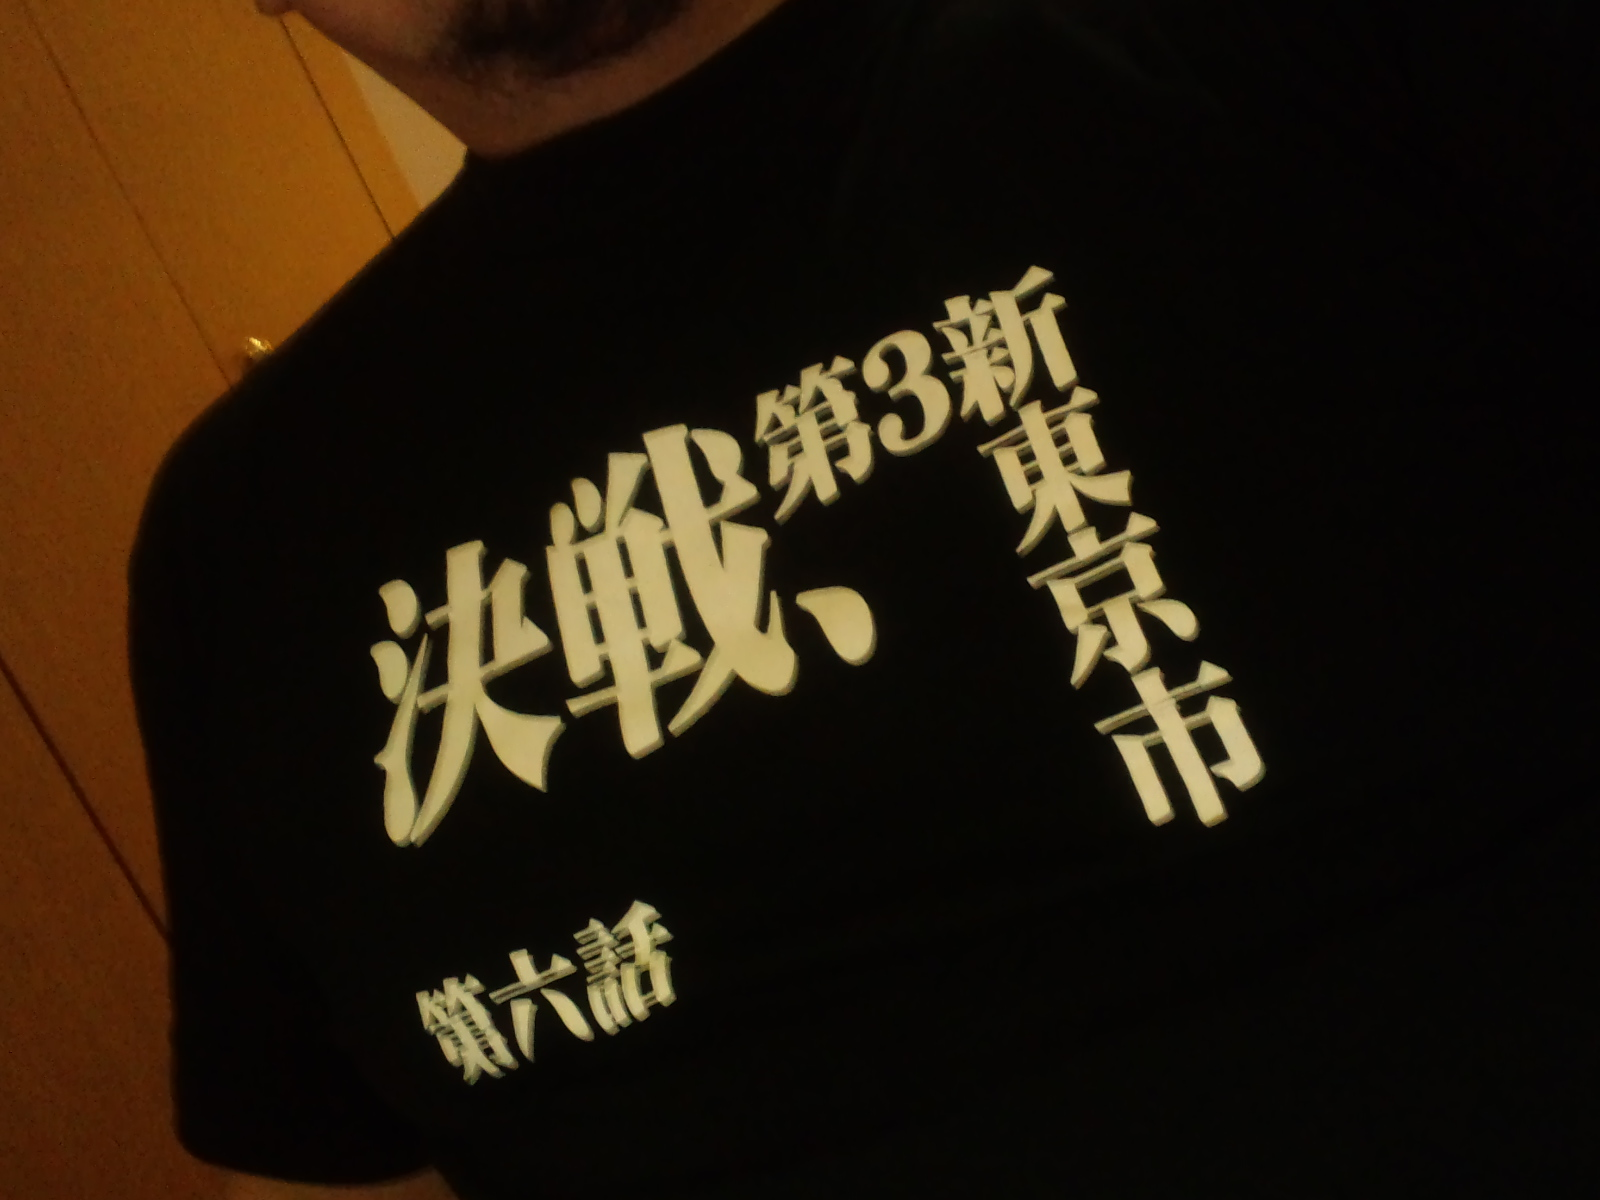 Feeling extremely sleepy...orz